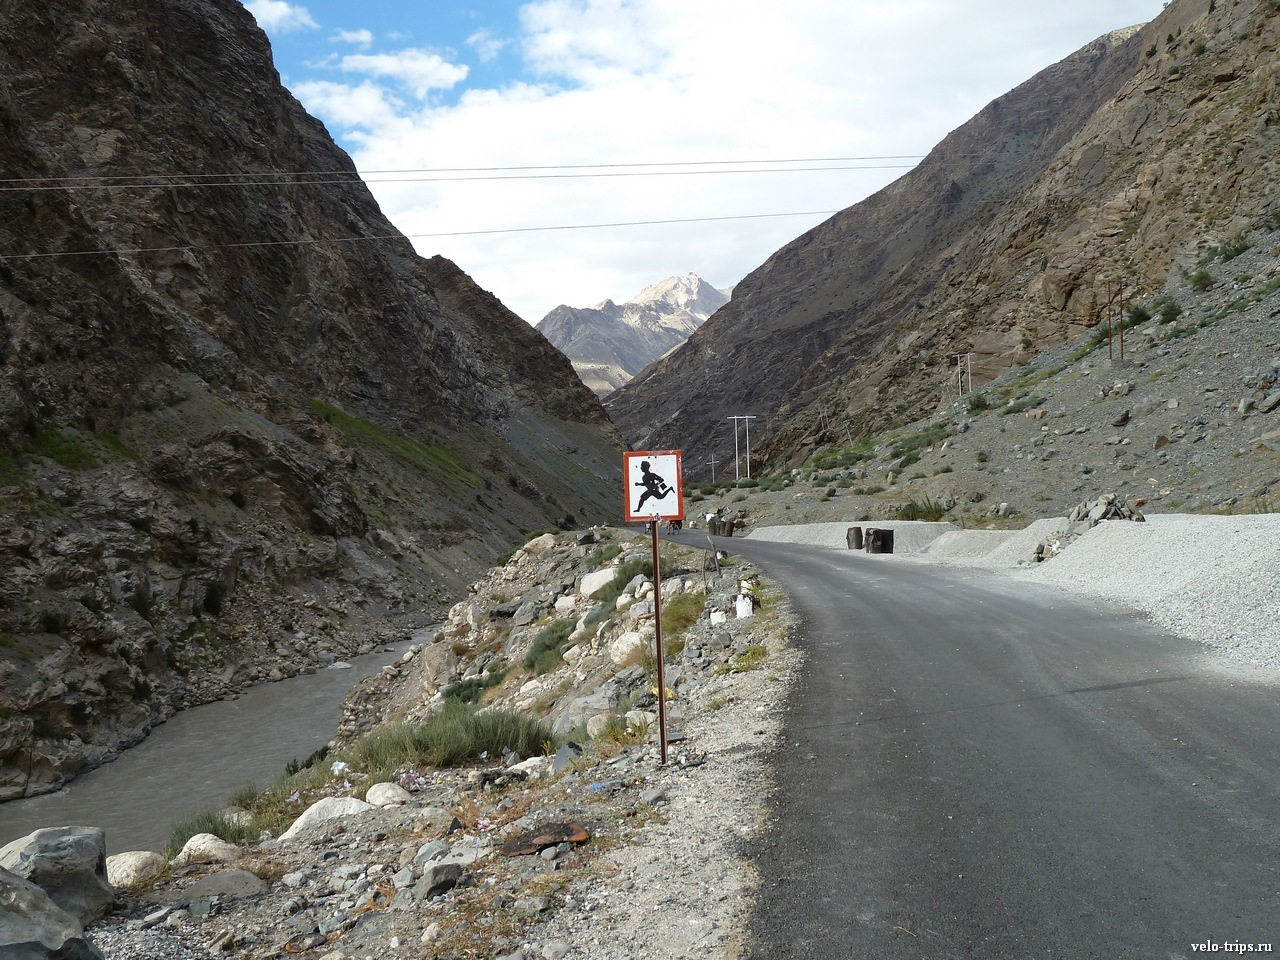 Running man on the sign. Road along Sutlej, Himalaya mountains